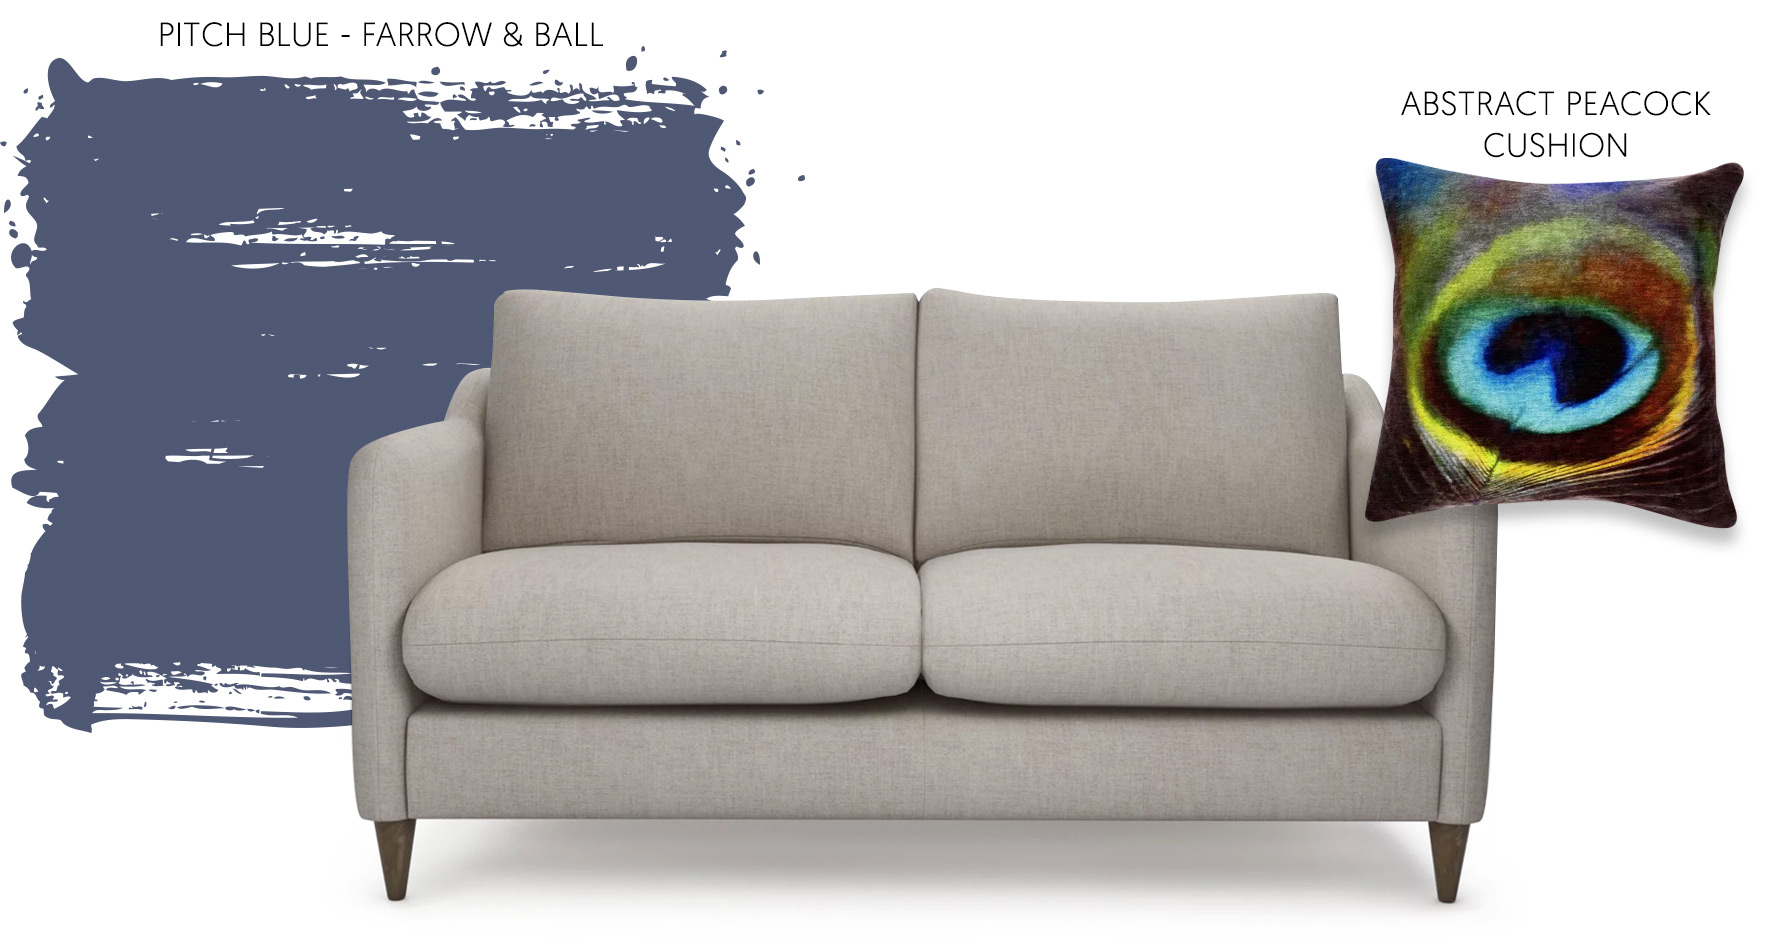 Accessorising a neutral sofa with Farrow & Ball paint